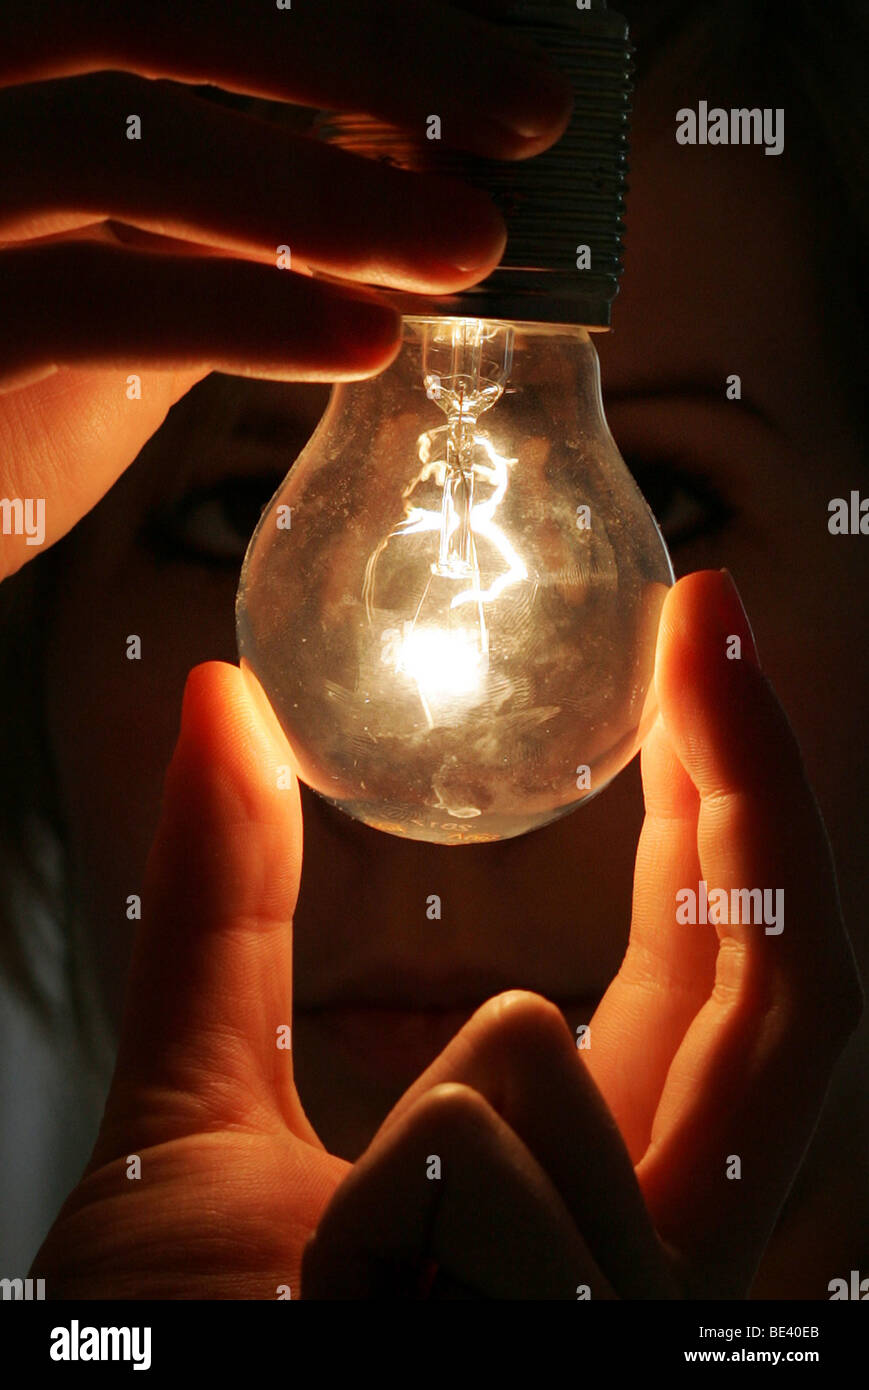 YOUNG WOMAN SCREWING  A  LIGHT BULB. Stock Photo